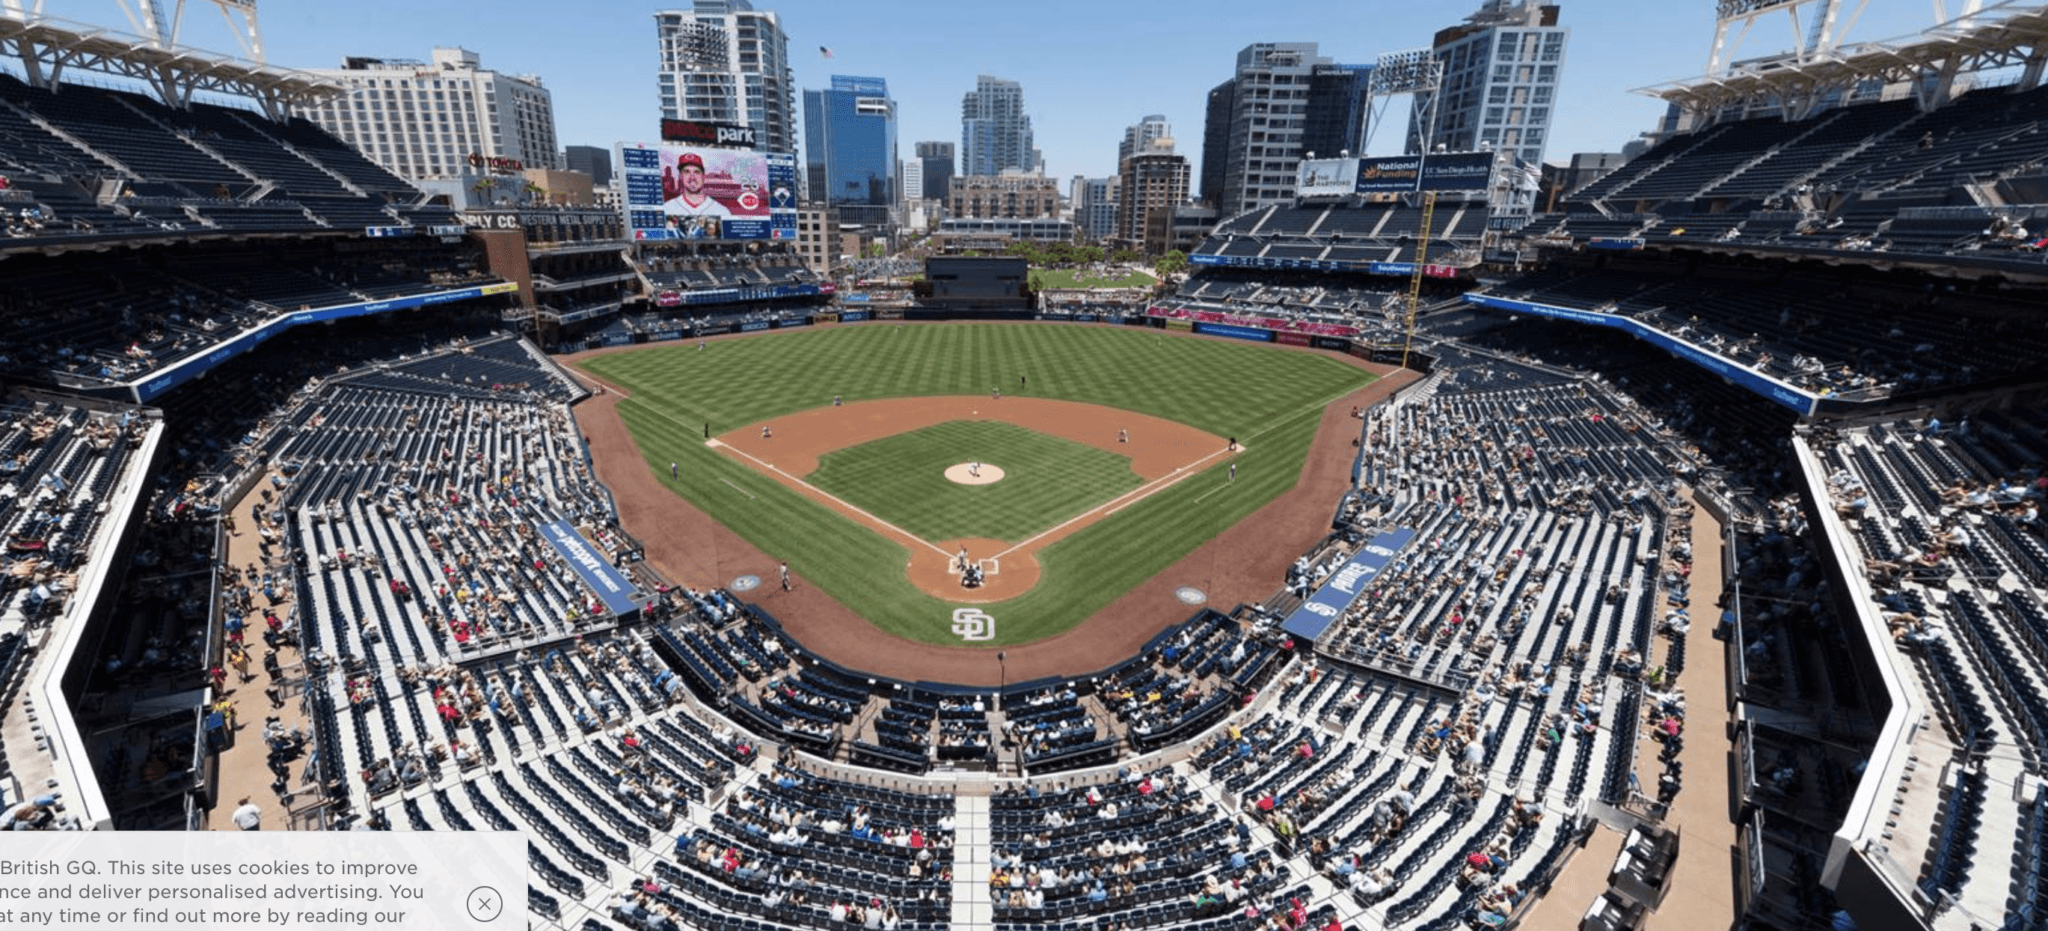 72 hours in San Diego